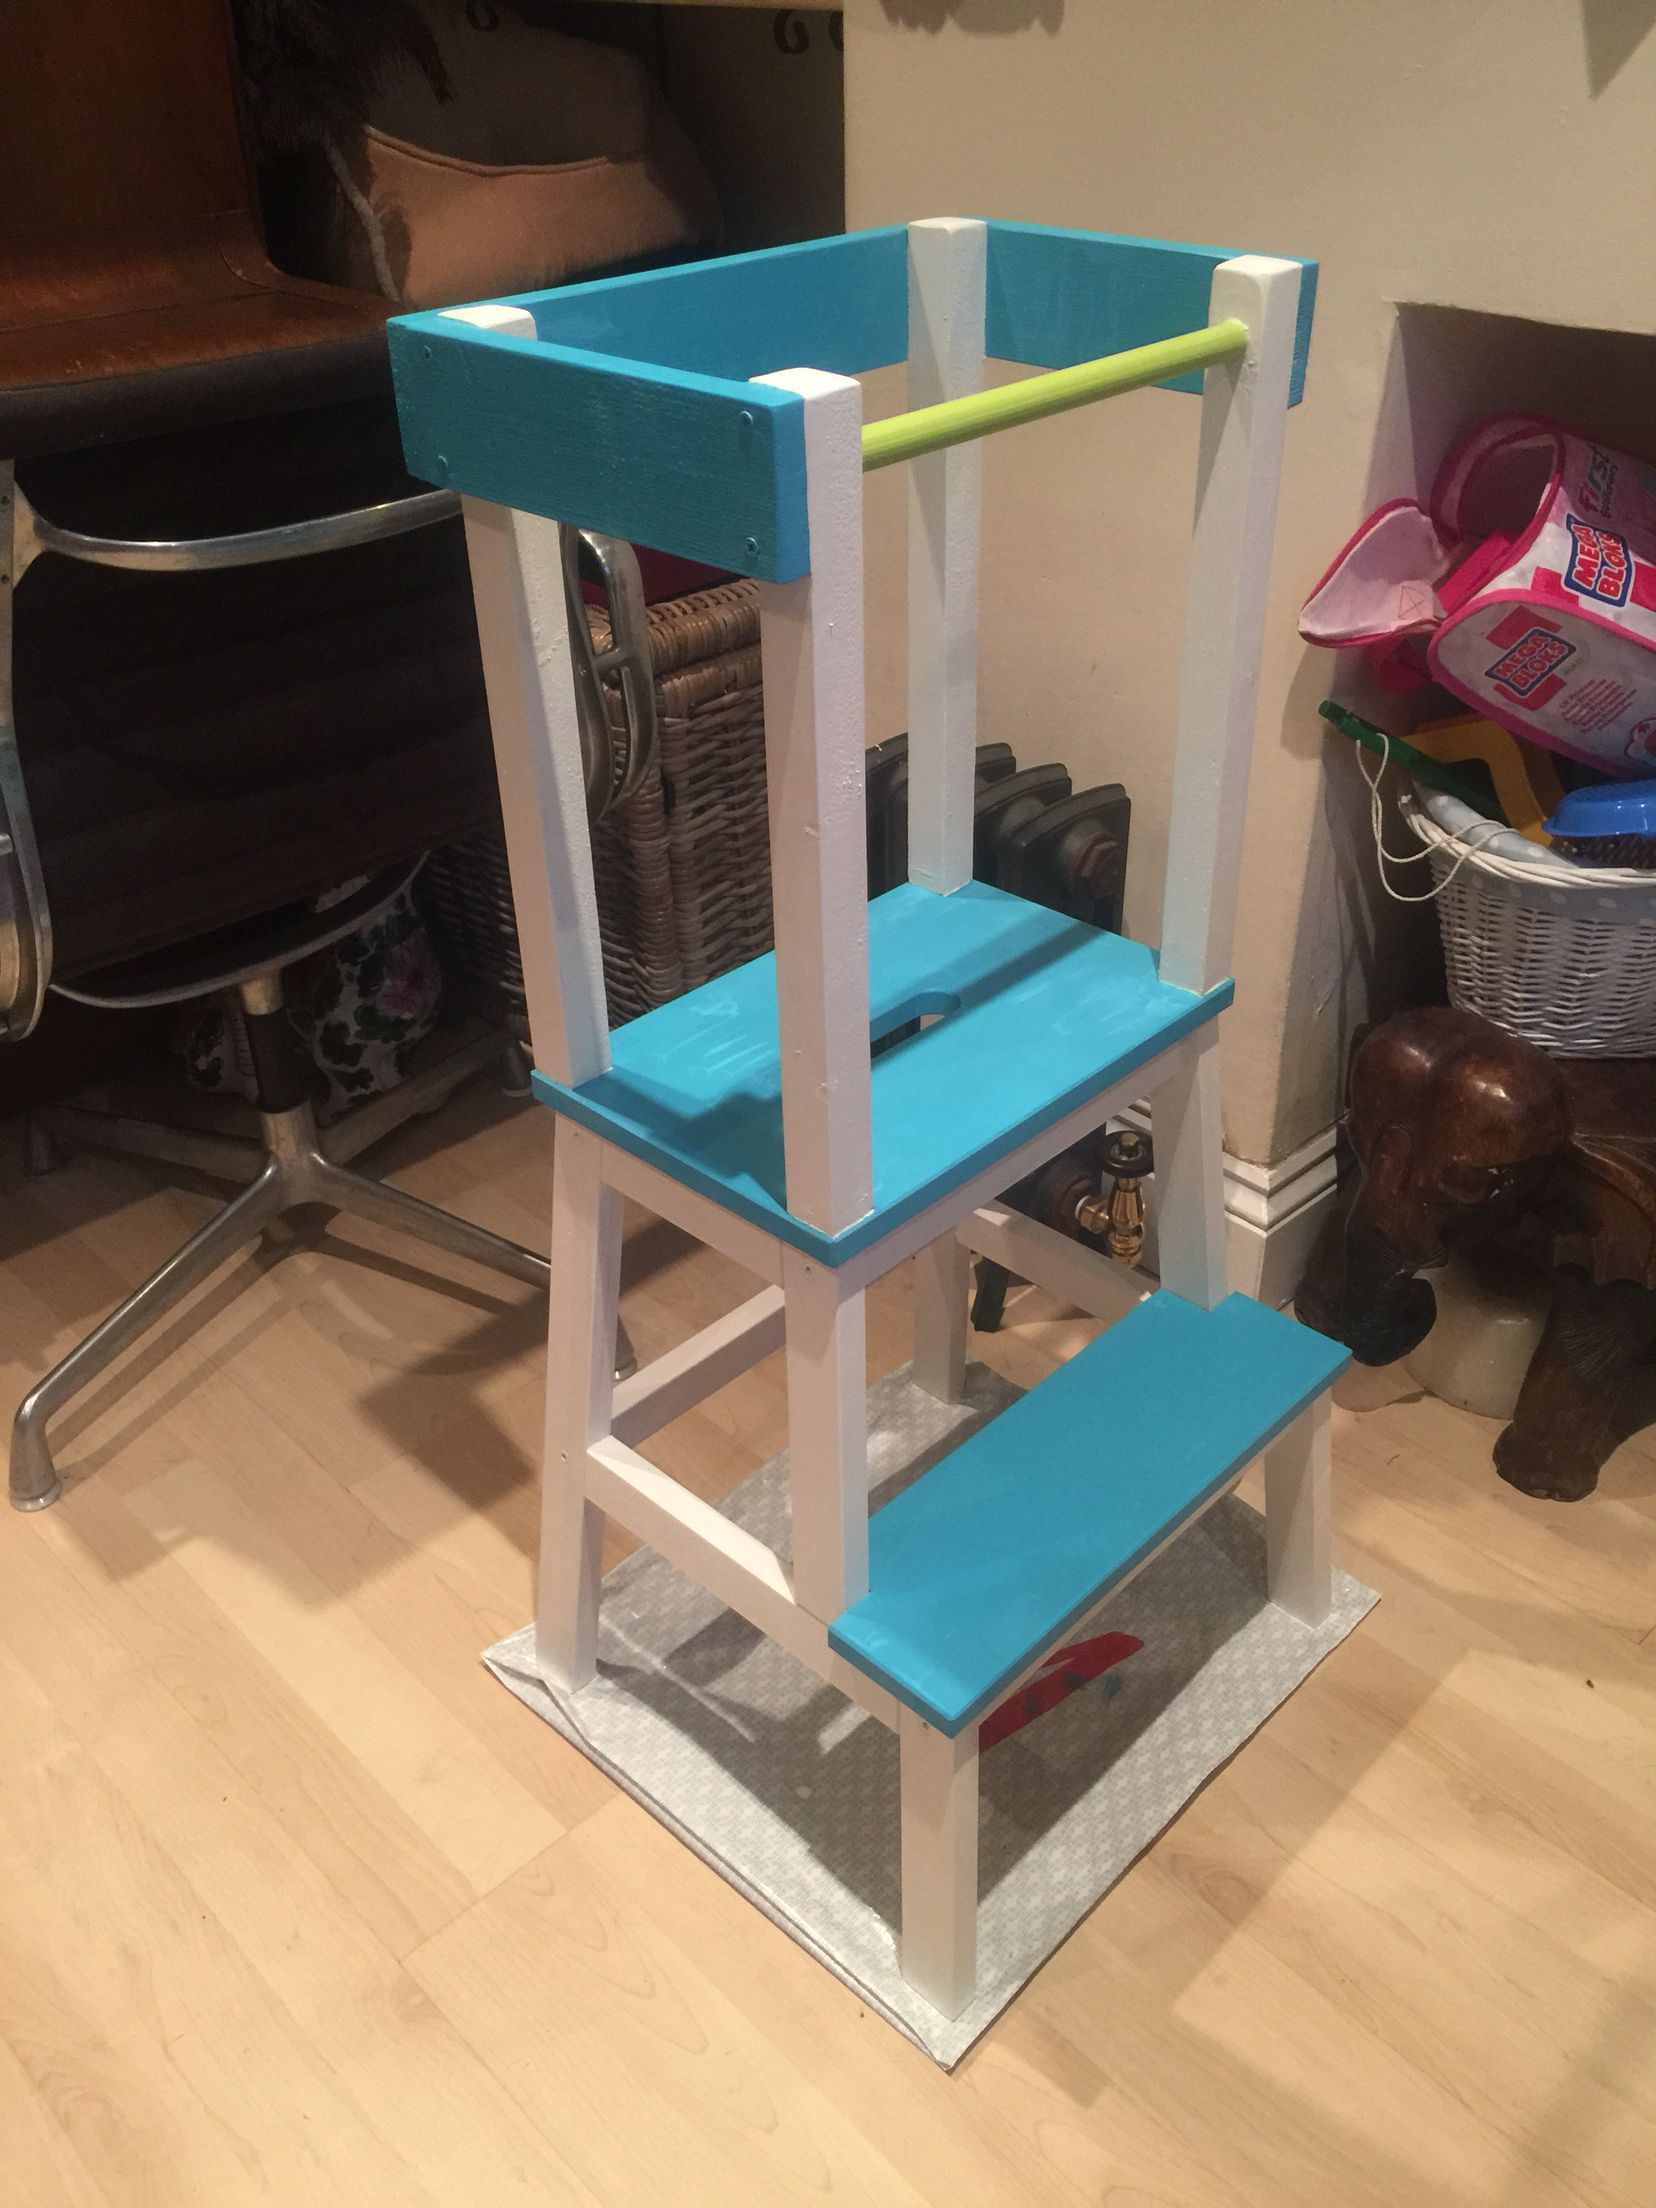 Hocker Küche Kinder Learning Tower Ikea Hack Für Kinder Kinderzimmer